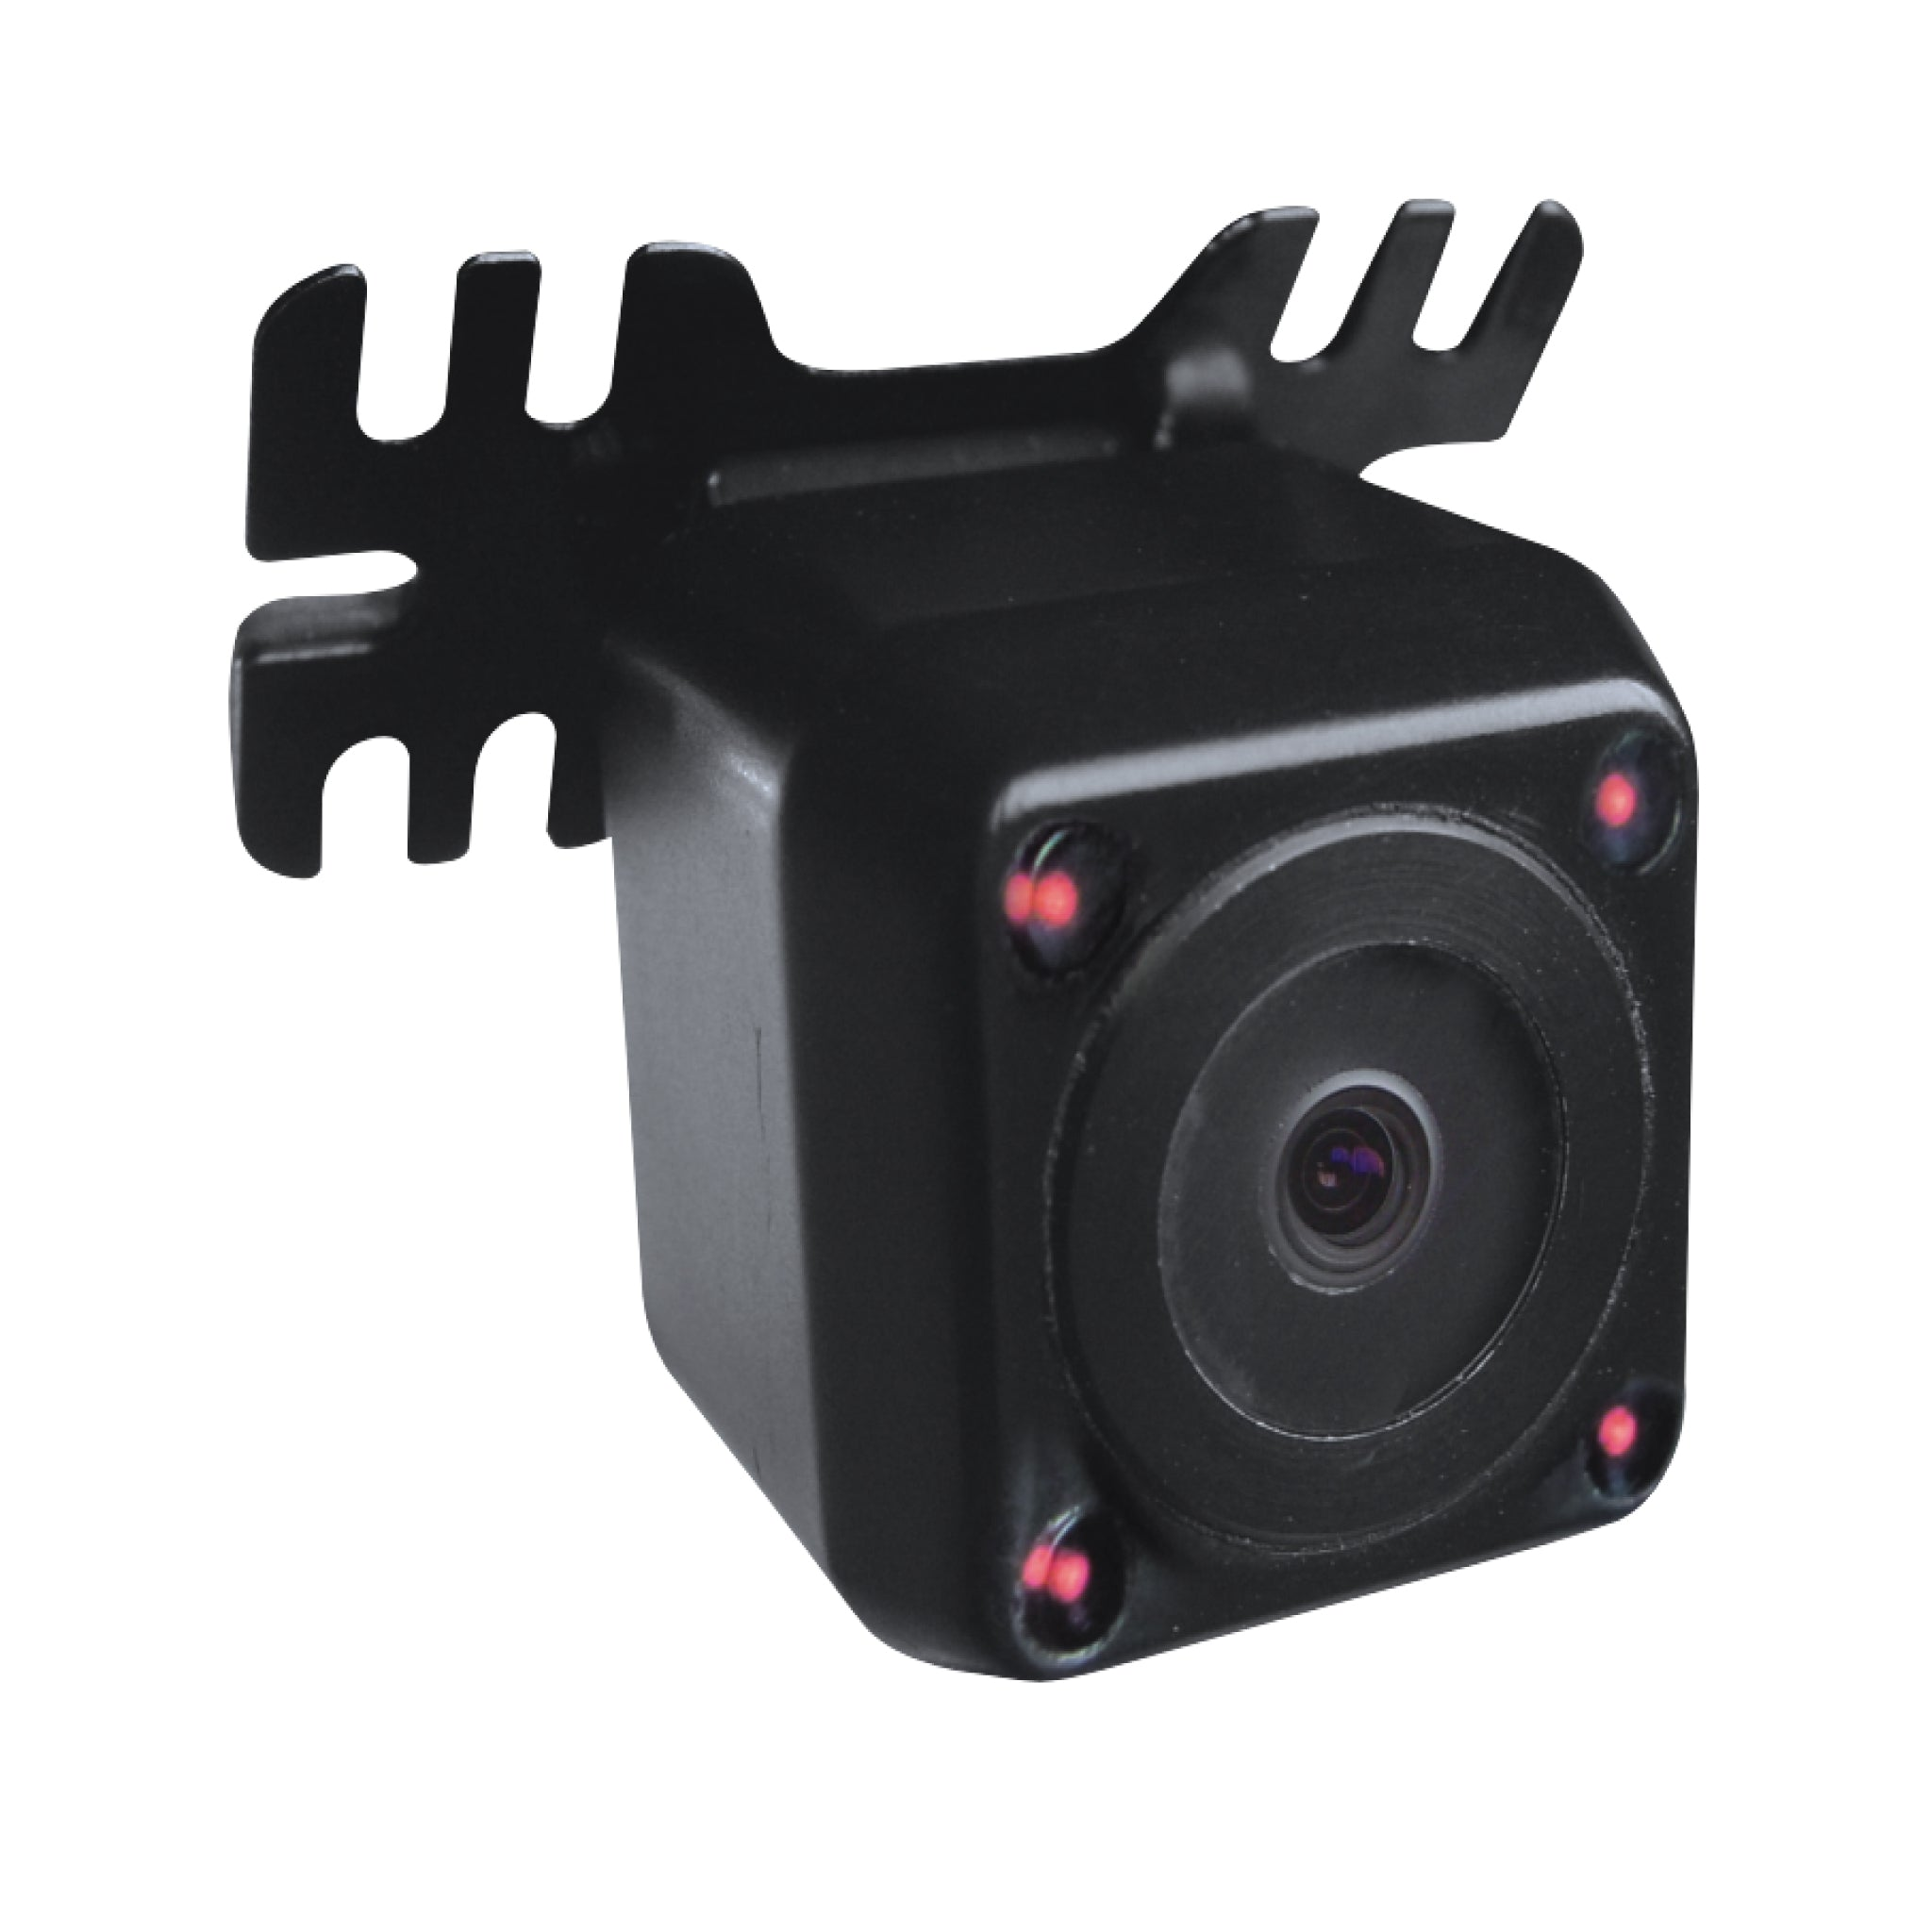 Universal Mini Camera with Night Vision Works in Complete Darkness Super CMOS III - Backup Camera